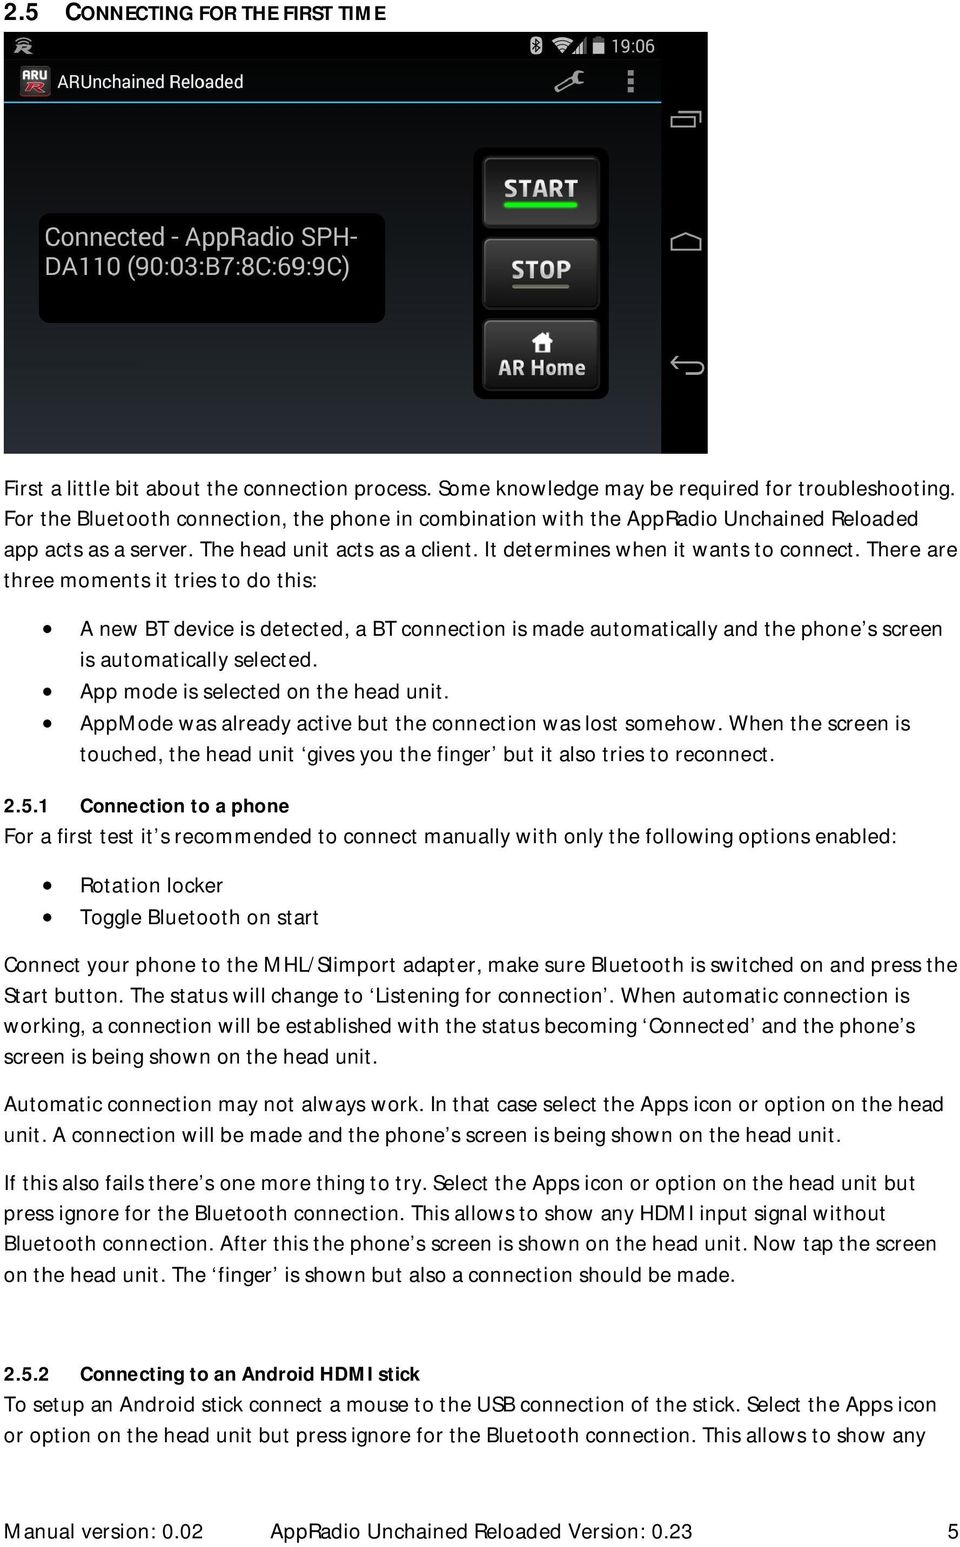 AppRadio Unchained Reloaded User s Guide - PDF